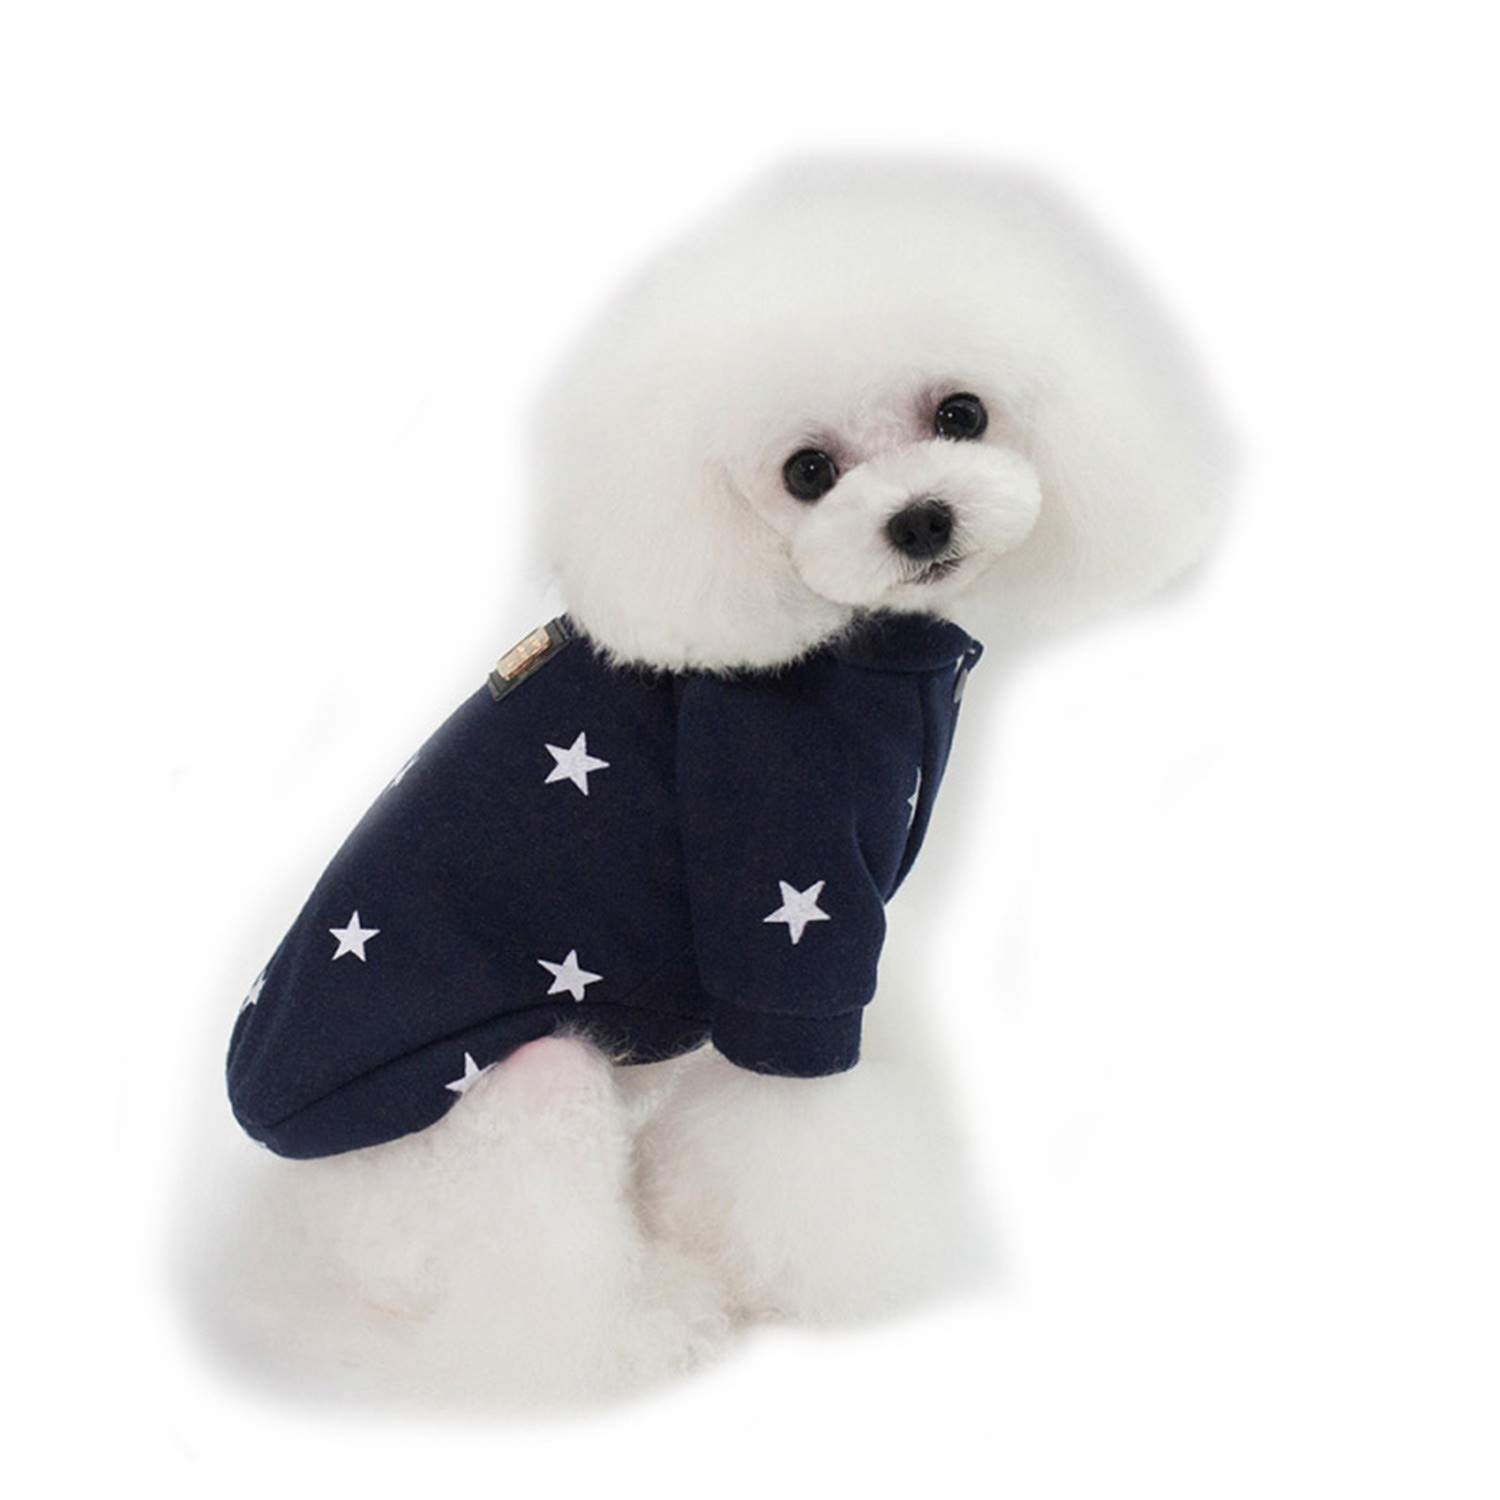 Winter Dog Clothes Coat Jacket Small Dog Costume Pet Hoodie Outfit Poodle Bichon Dog Clothing Apparel Pet